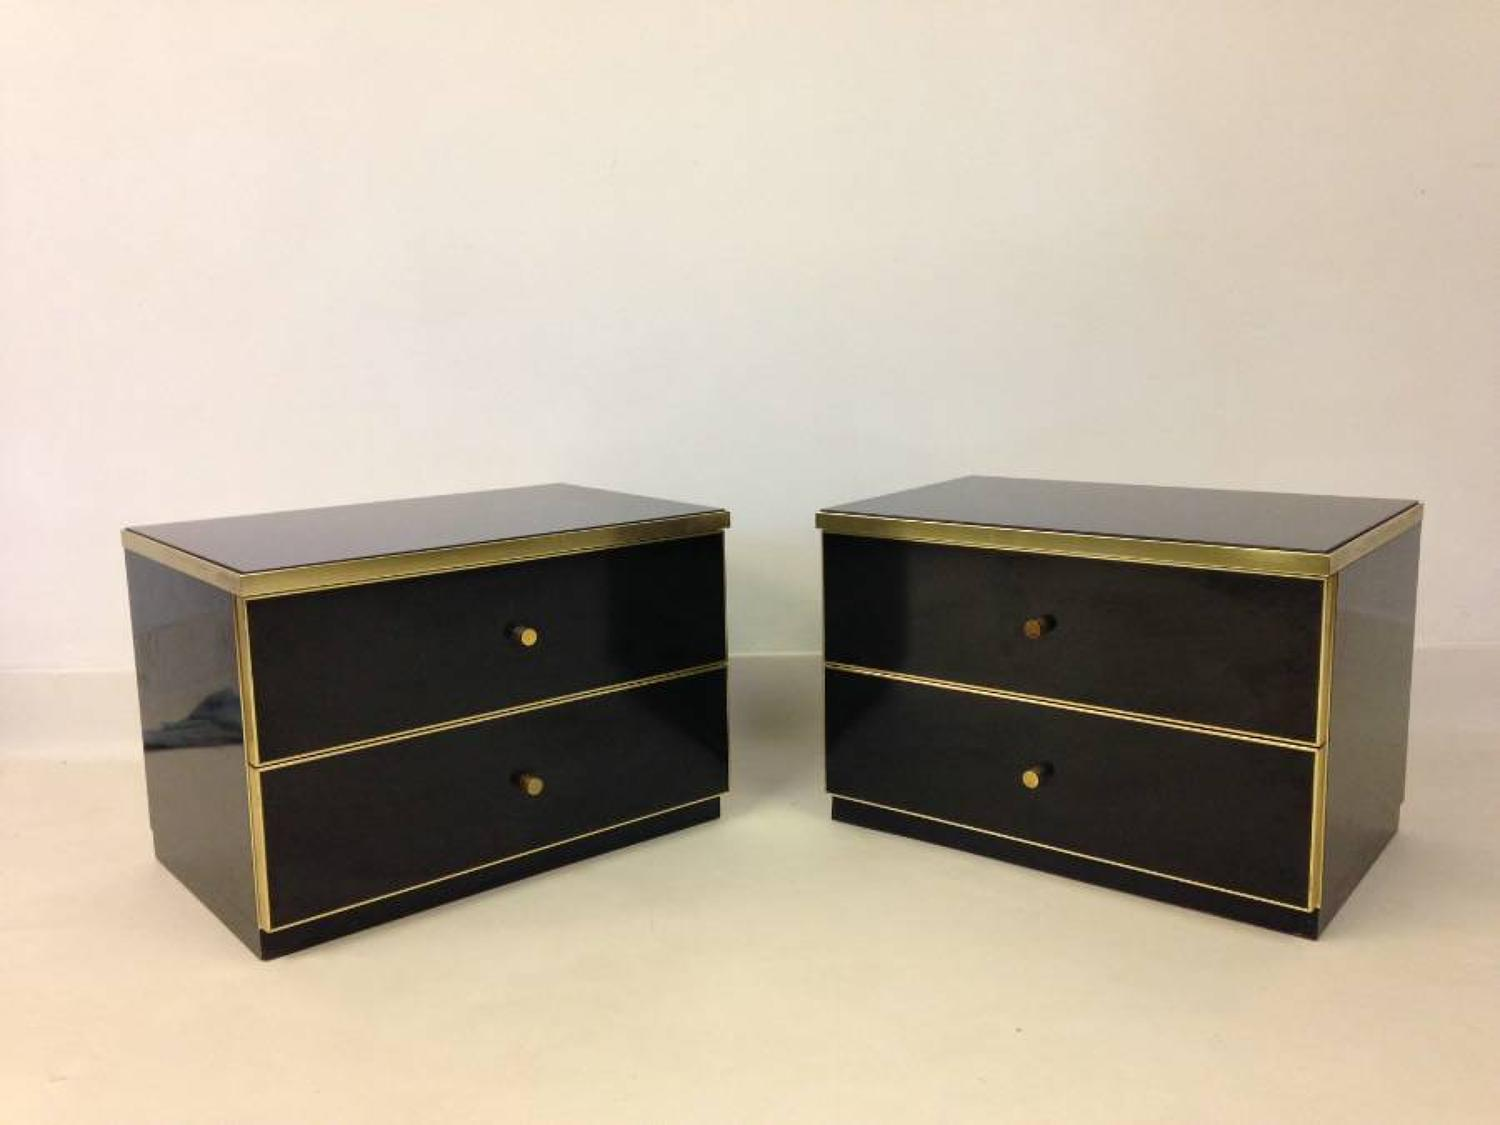 A pair of Italian bedside drawers